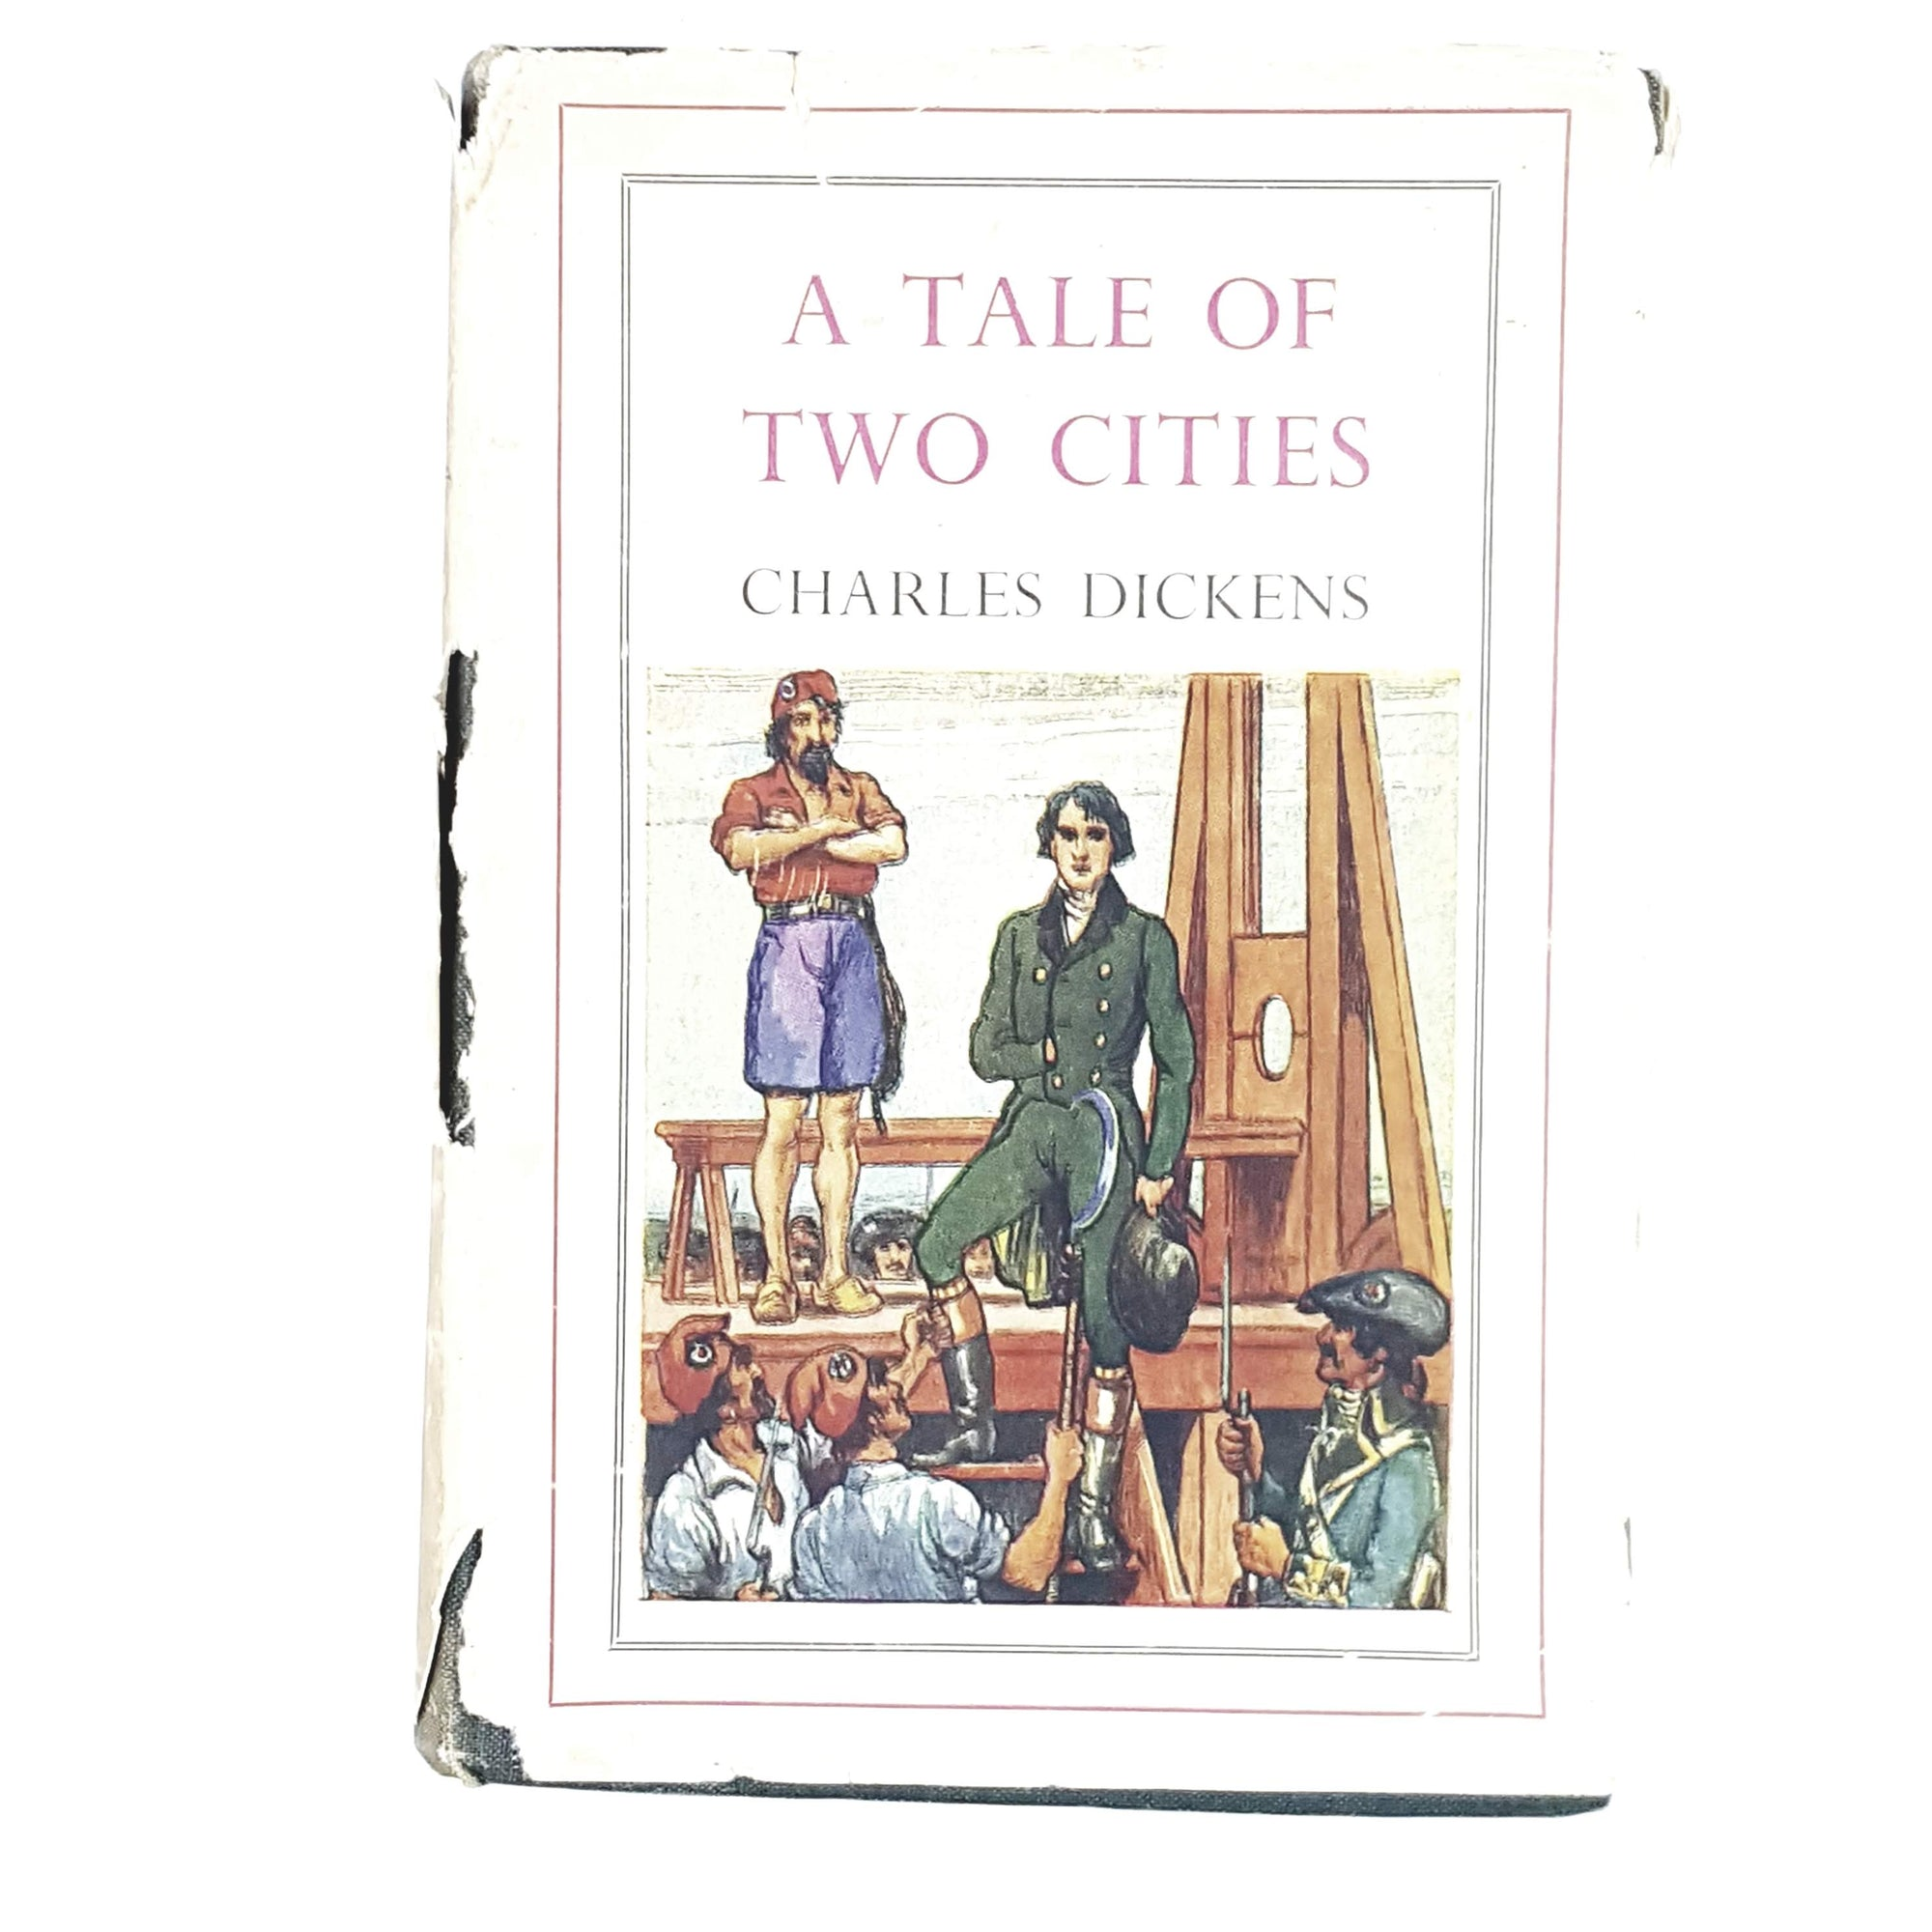 Charles Dickens' A Tale of Two Cities c1944